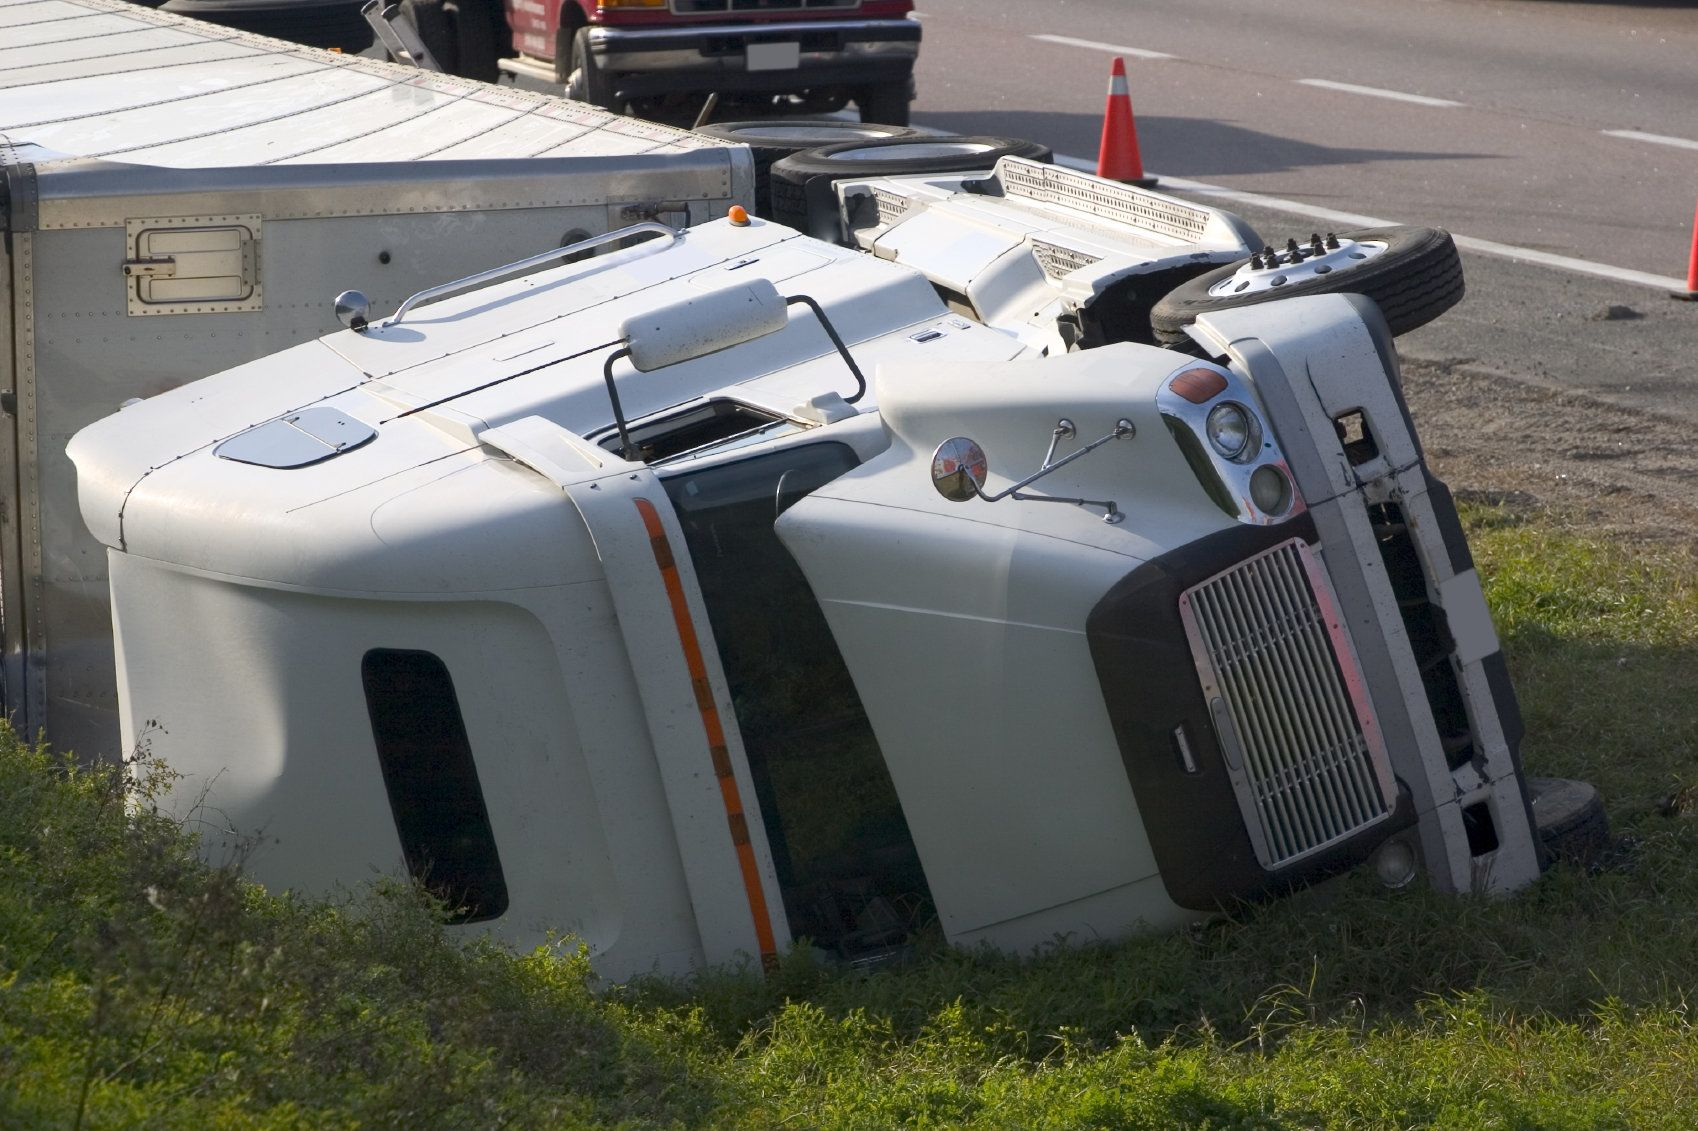 A large truck rollover accident